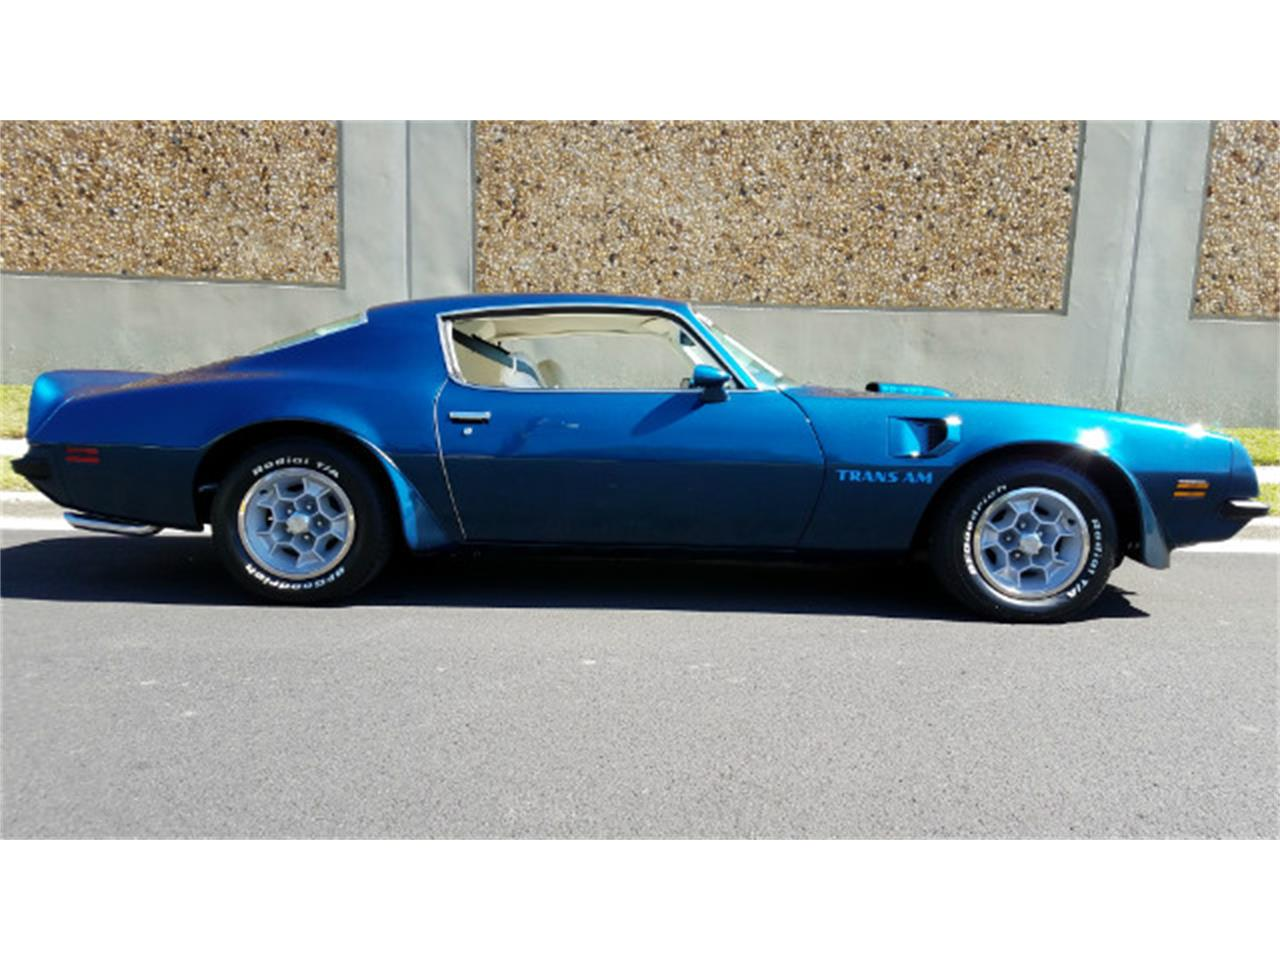 Large Picture of 1974 Pontiac Firebird Trans Am located in Linthicum Maryland - $78,900.00 - MO89